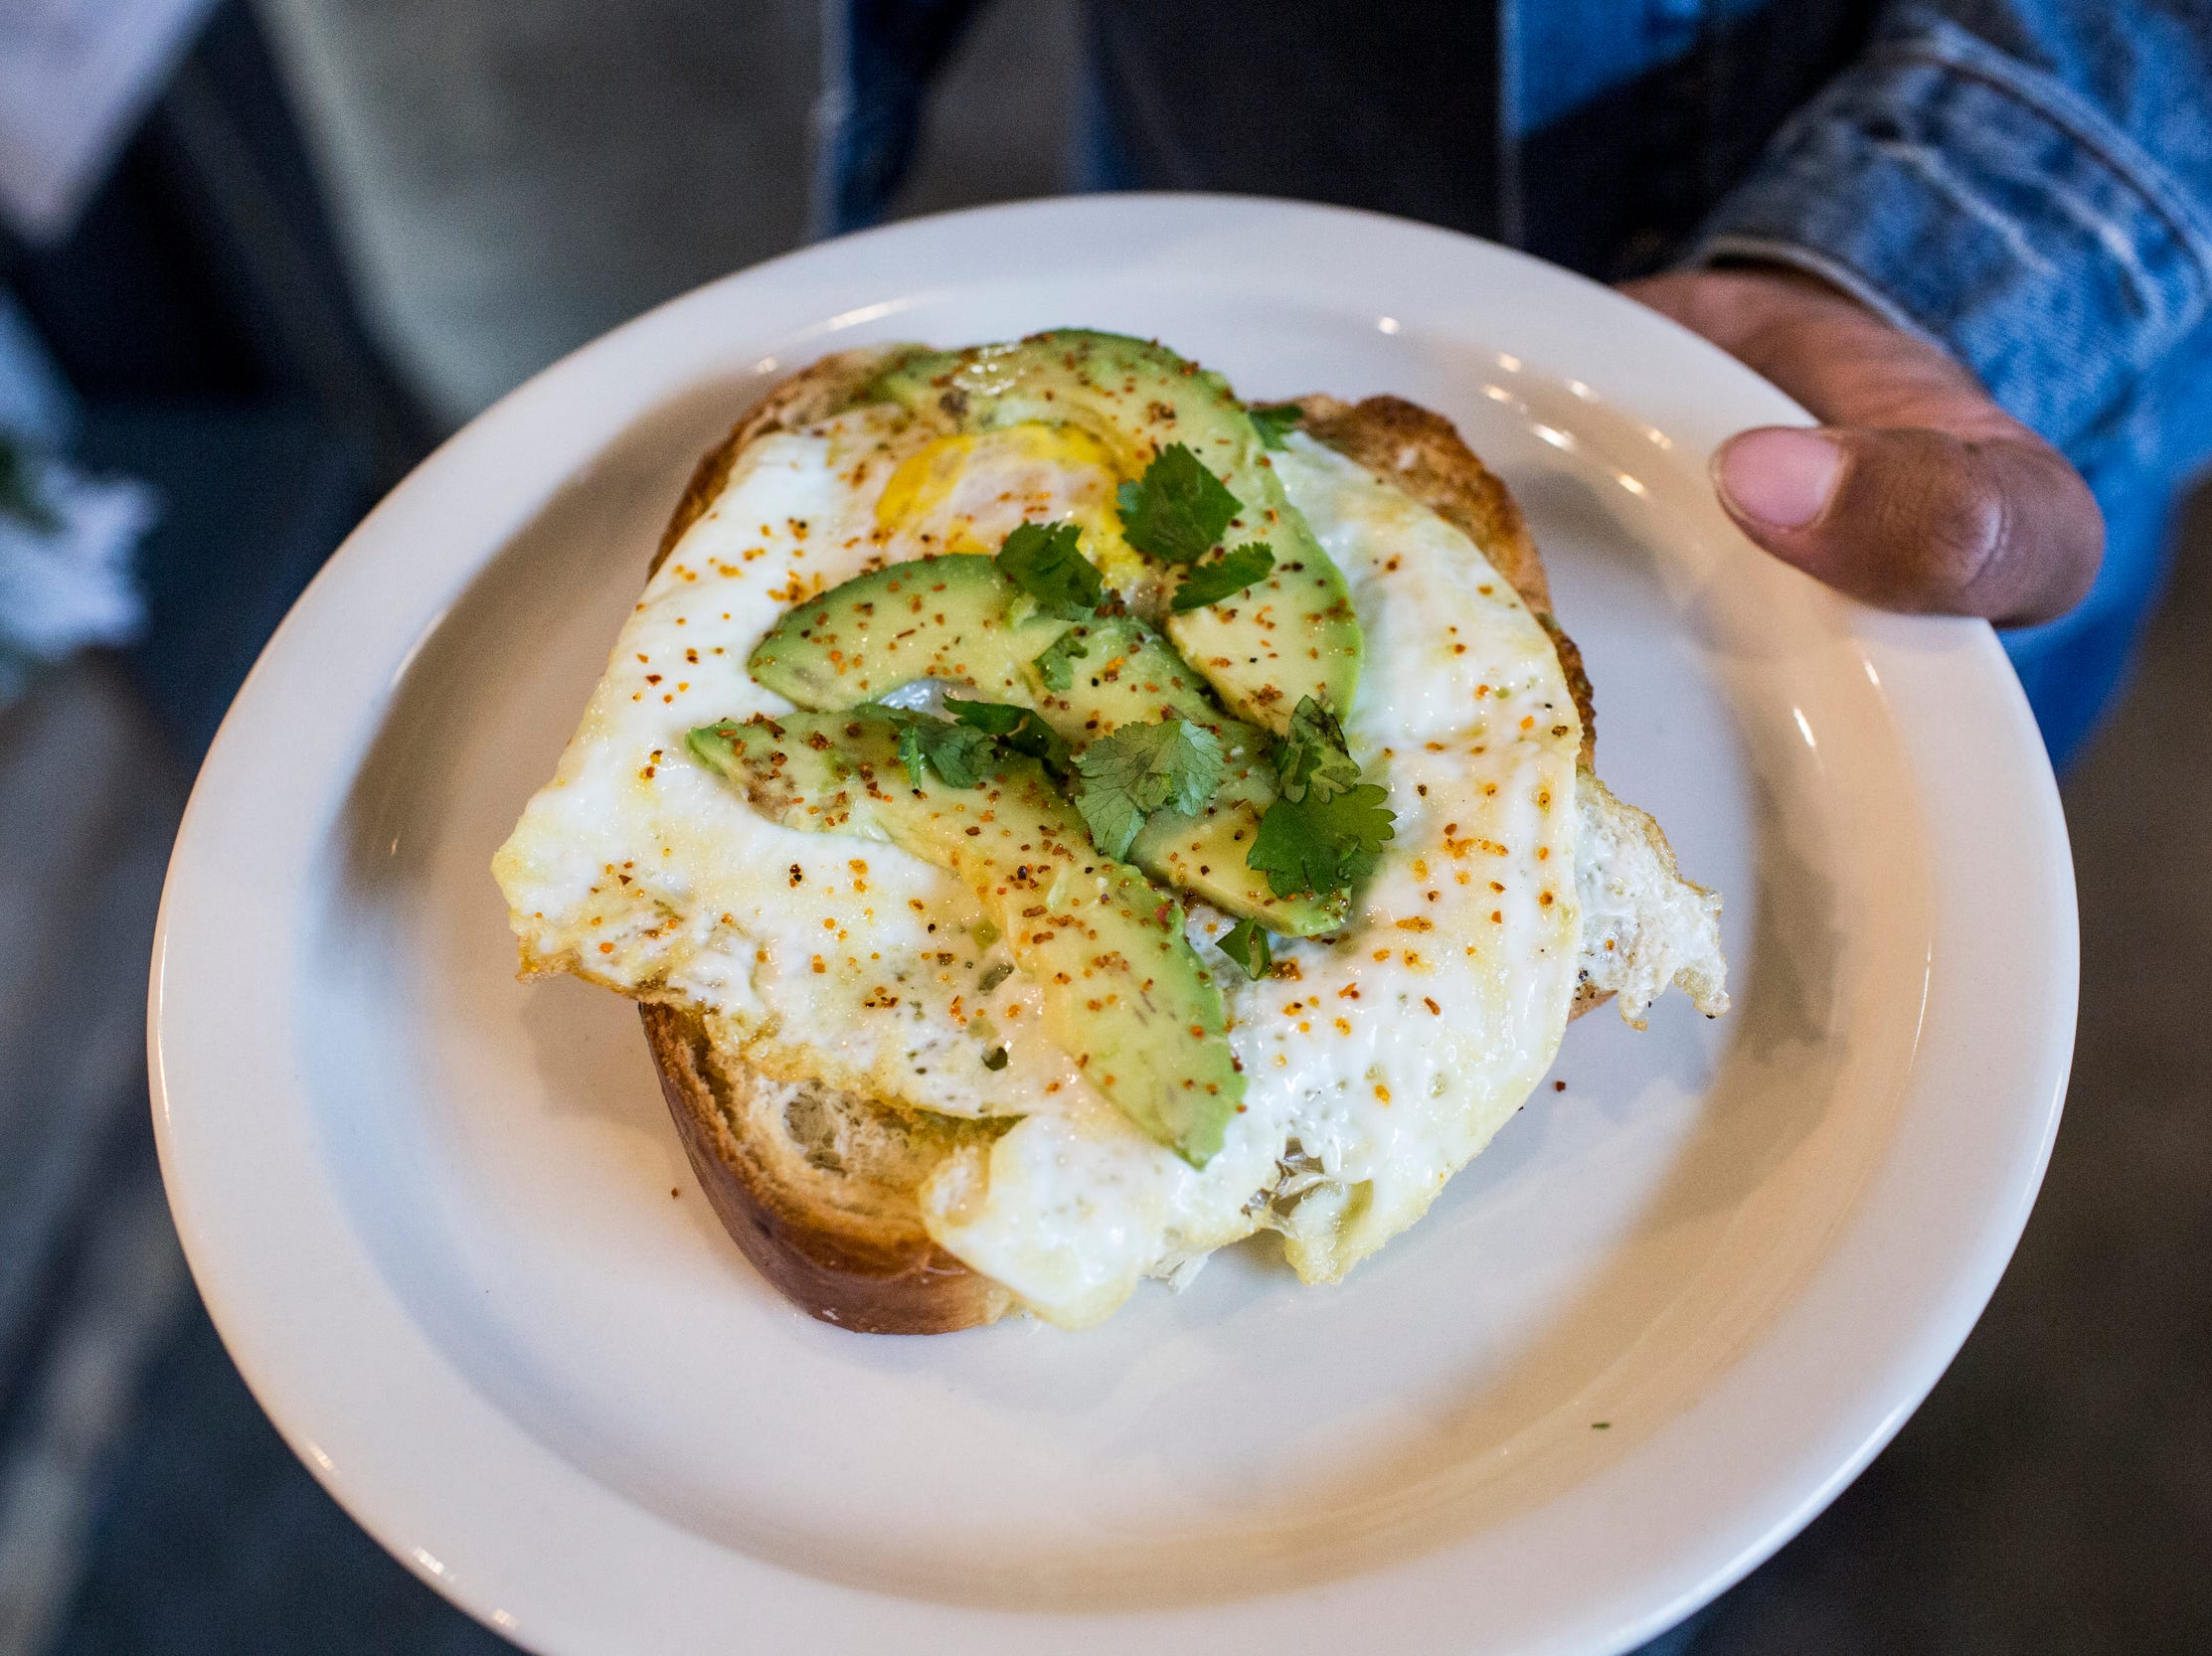 December 23 2018 - Avocado Toast featuring local baked bread, avocado, a fried egg, sea salt and tajin is seen at Inspire Community Cafe during the final of three friends & family soft openings before the cafe opens January 4th.